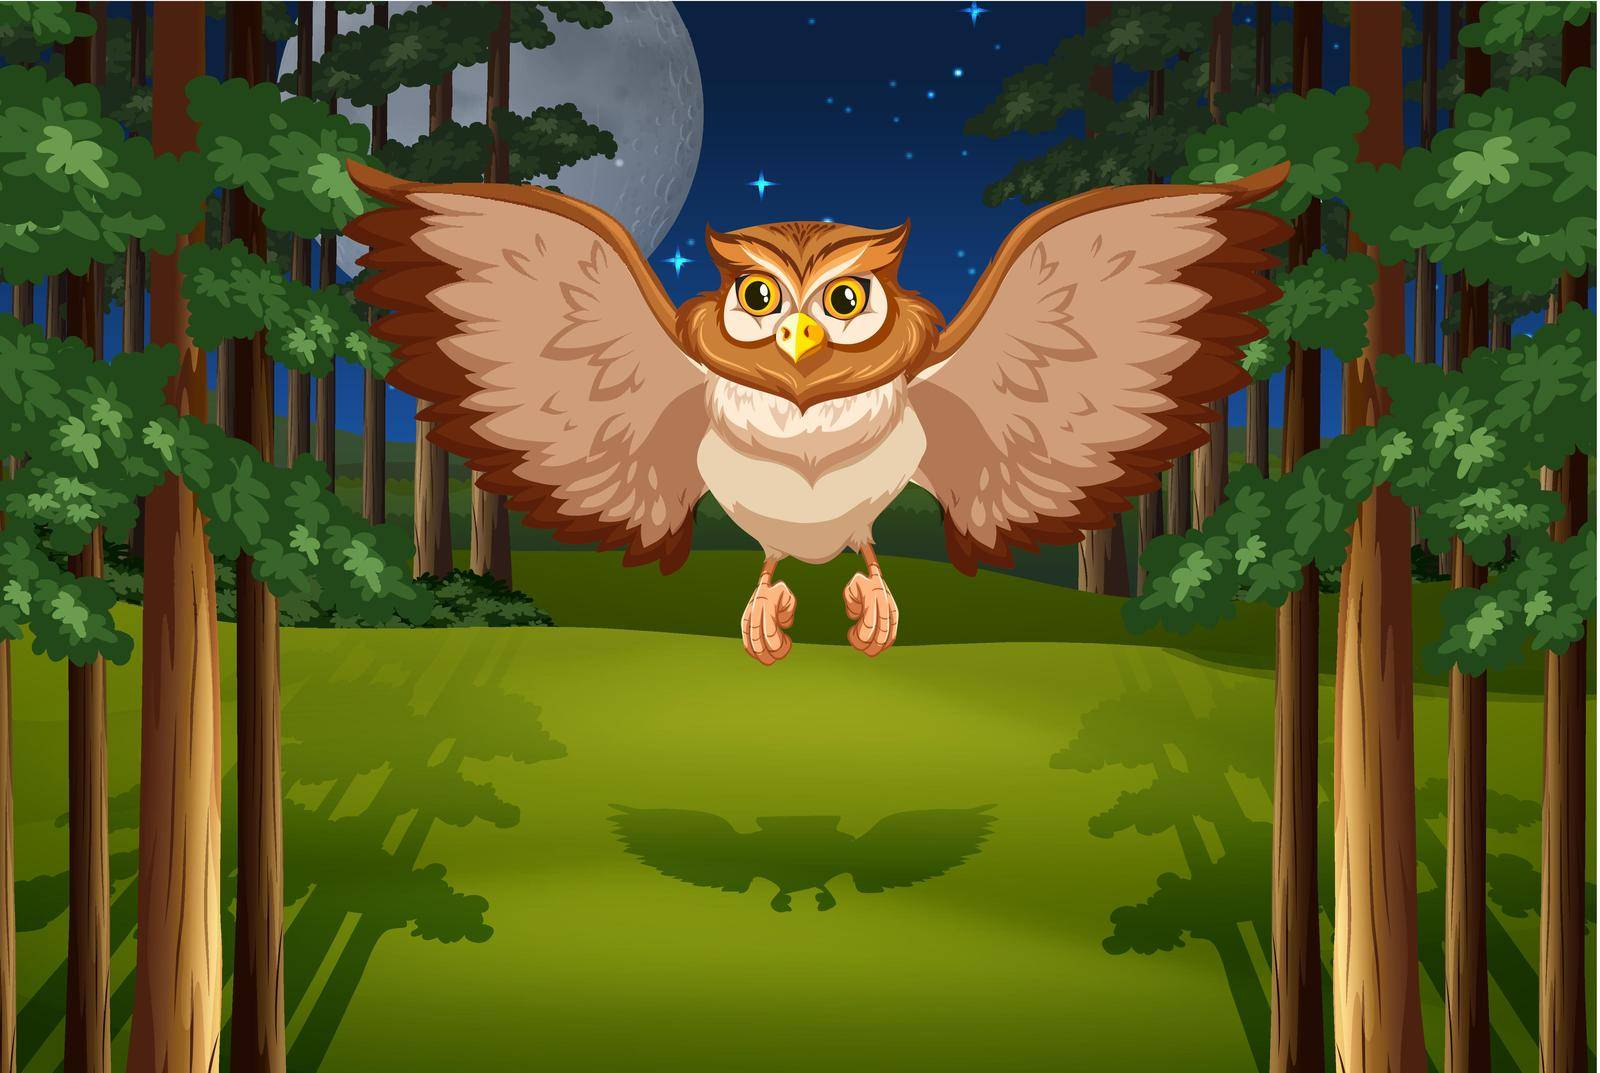 Poster of an owl flying in the jungle under full moon and stars